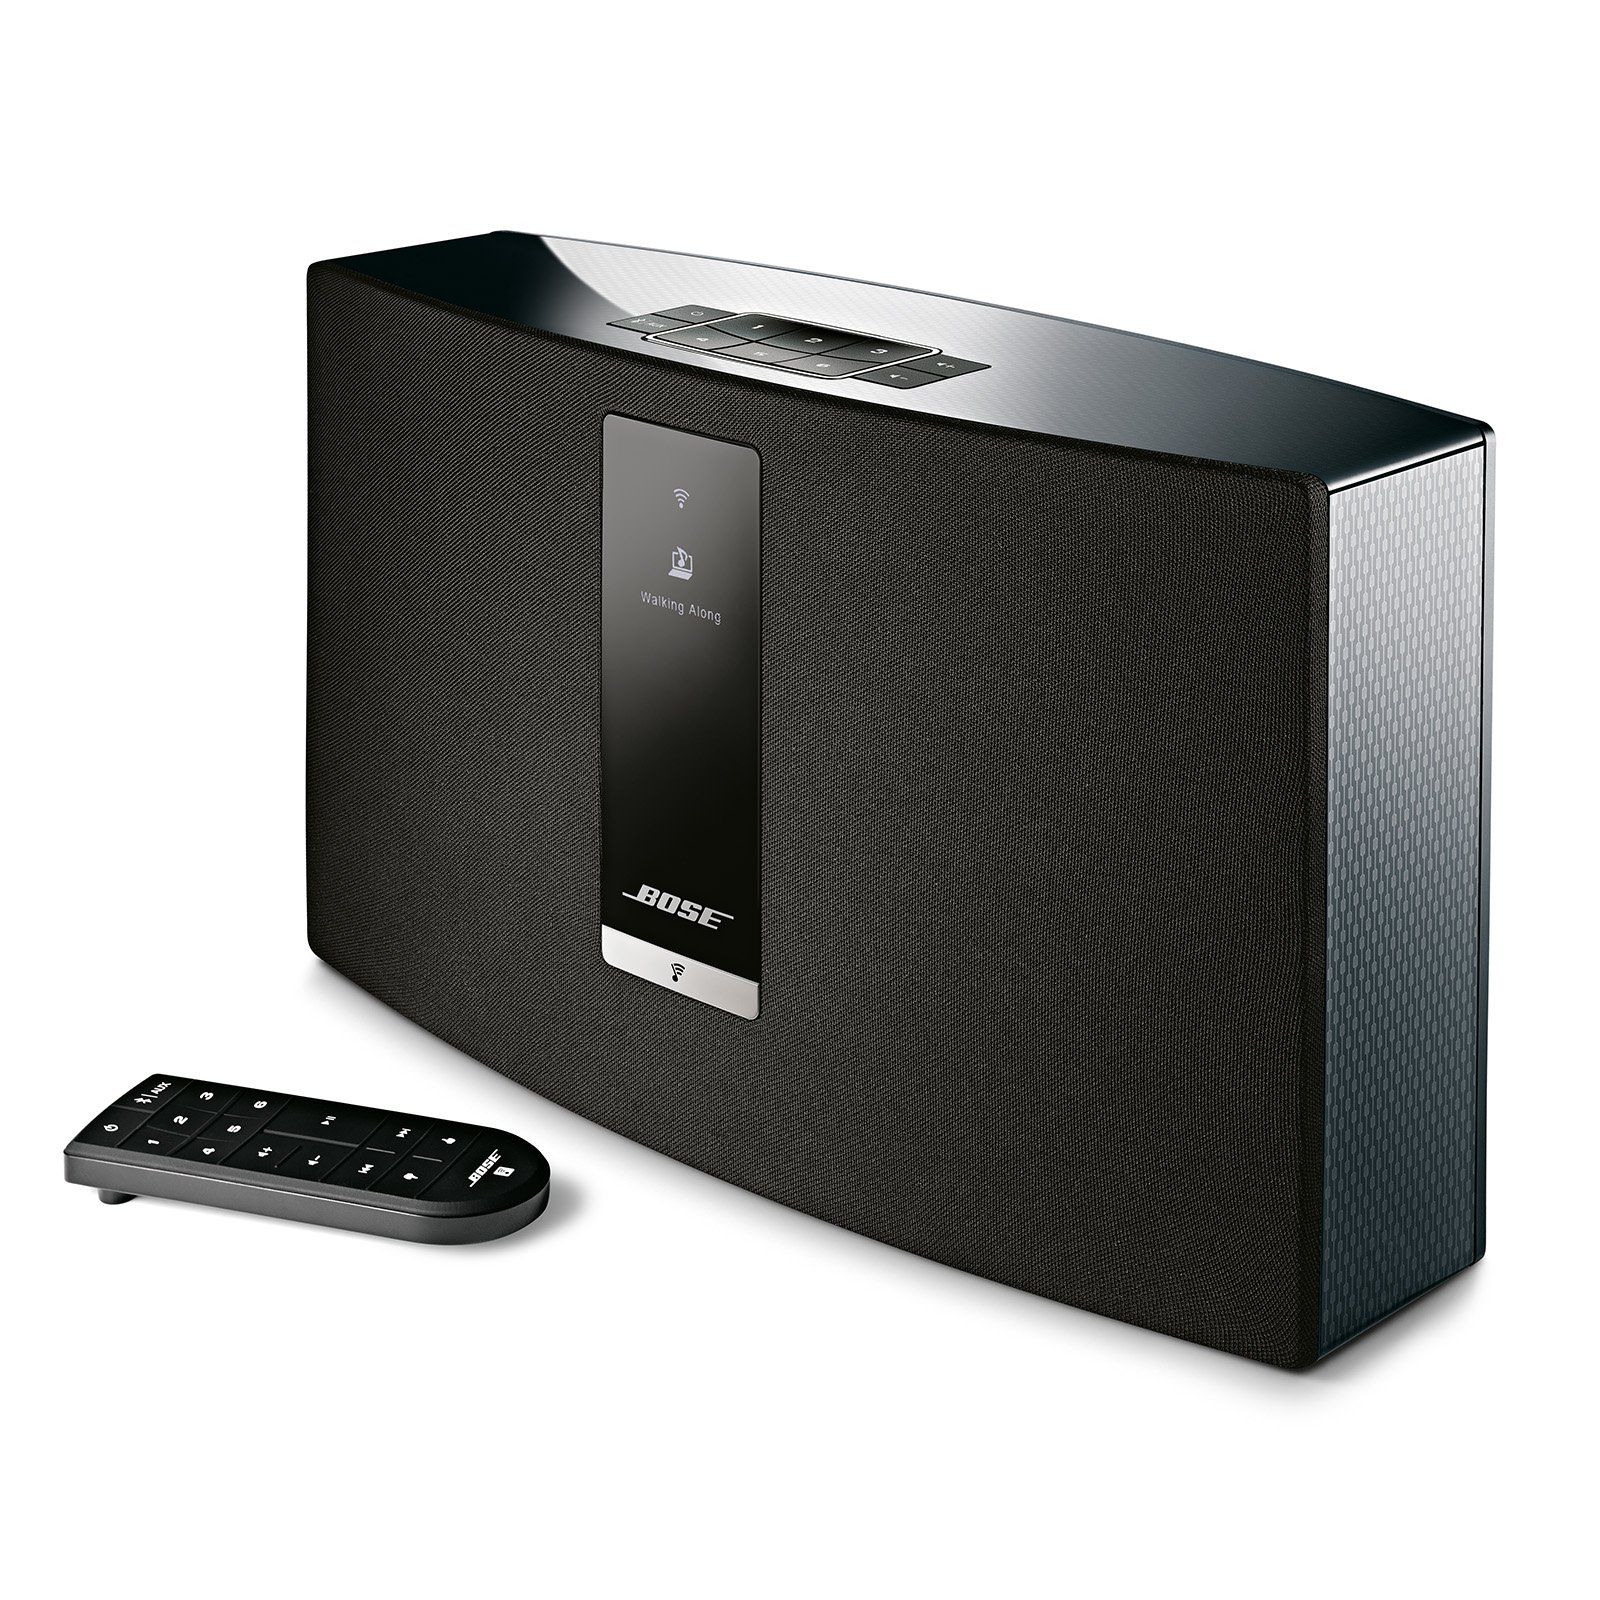 Bose SoundTouch 20 wireless speaker, works with Alexa, Black by Bose